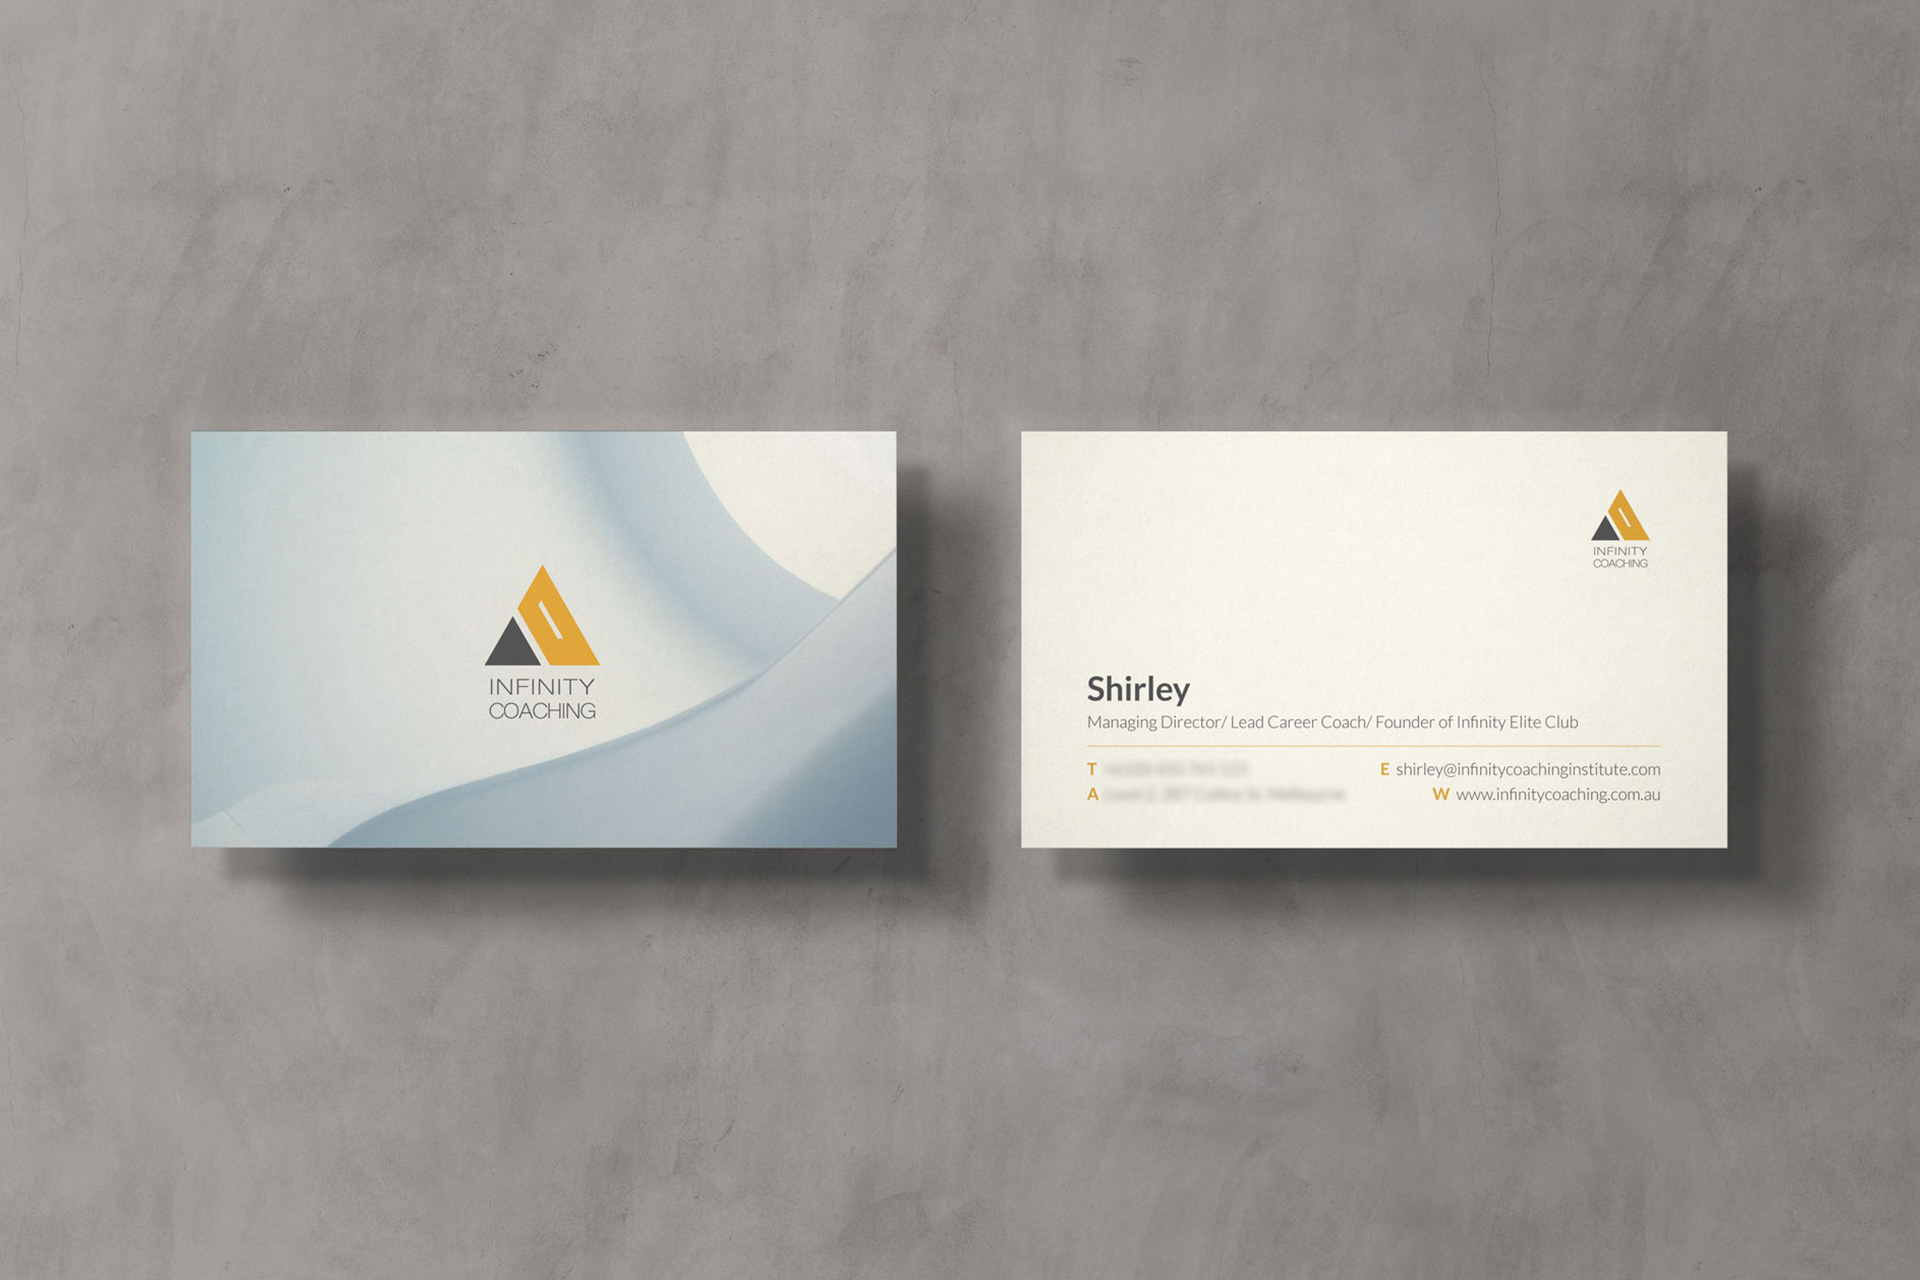 hr coaching consulting marketing collaterals by Z Creative Studio Branding & Graphic Design Melbourne